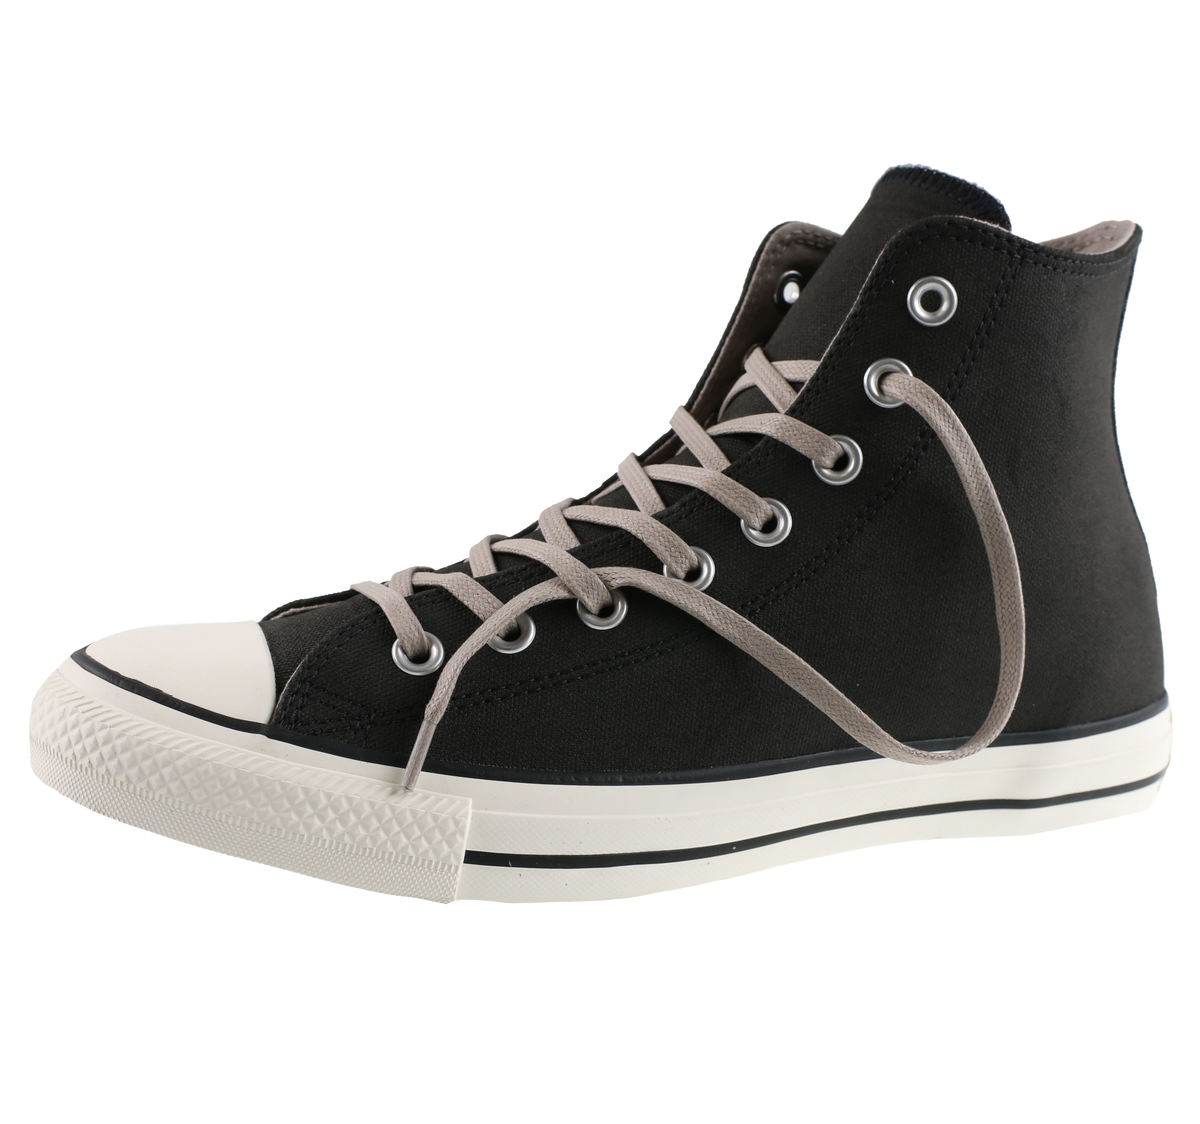 boty CONVERSE - Chuck Taylor All Star - C157447